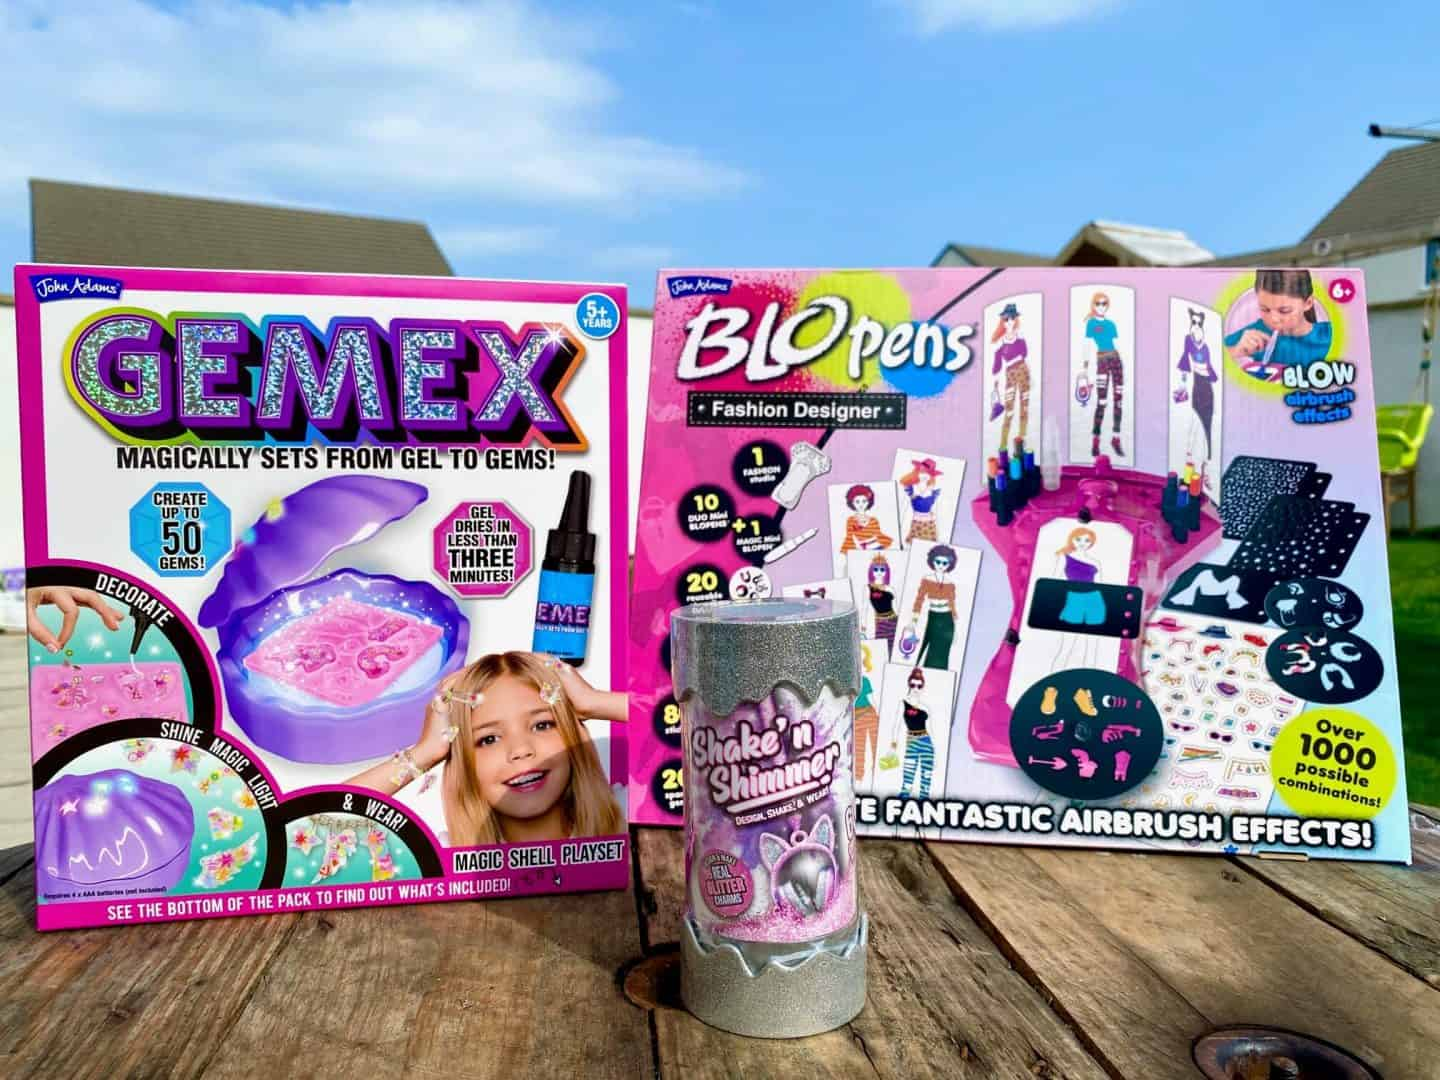 Fashion Inspired Toys From John Adams - BLOPENS Fashion Designer, Gemex Shell Playset and Shake 'n' Shimmer - Review